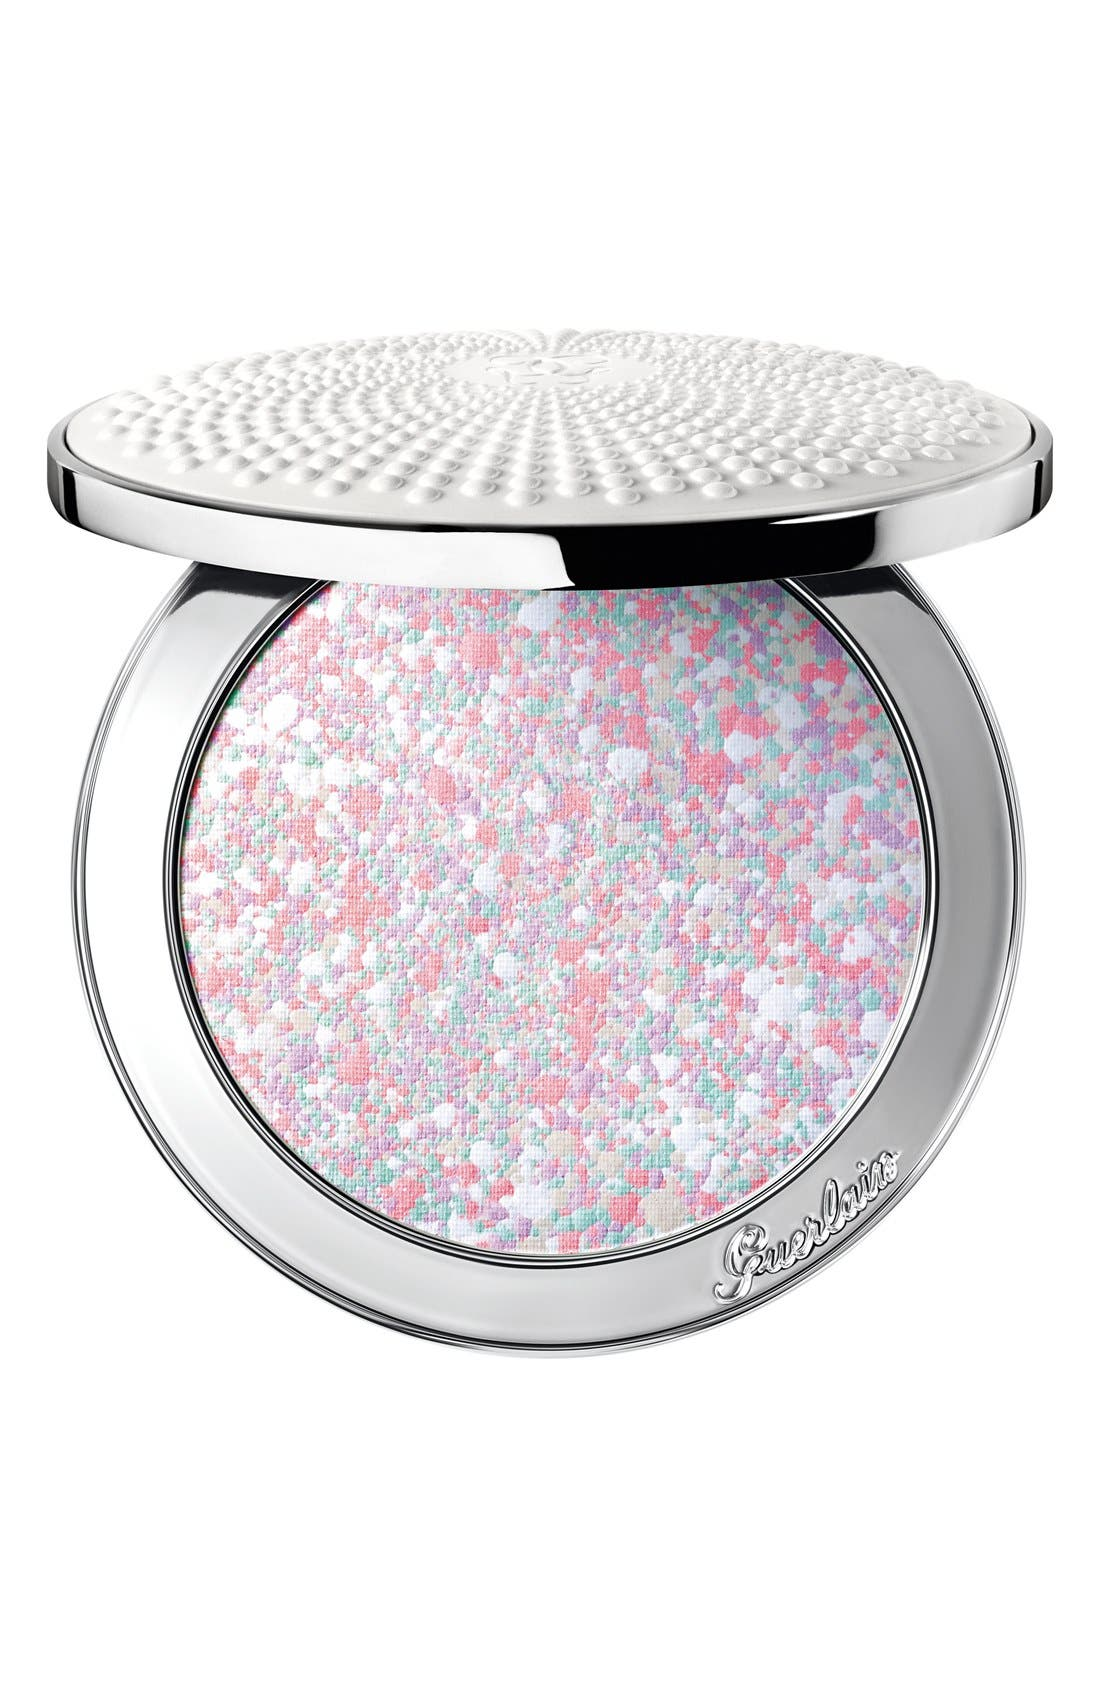 Guerlain 'Météorites Voyage' Pearls of Powder Refillable Compact